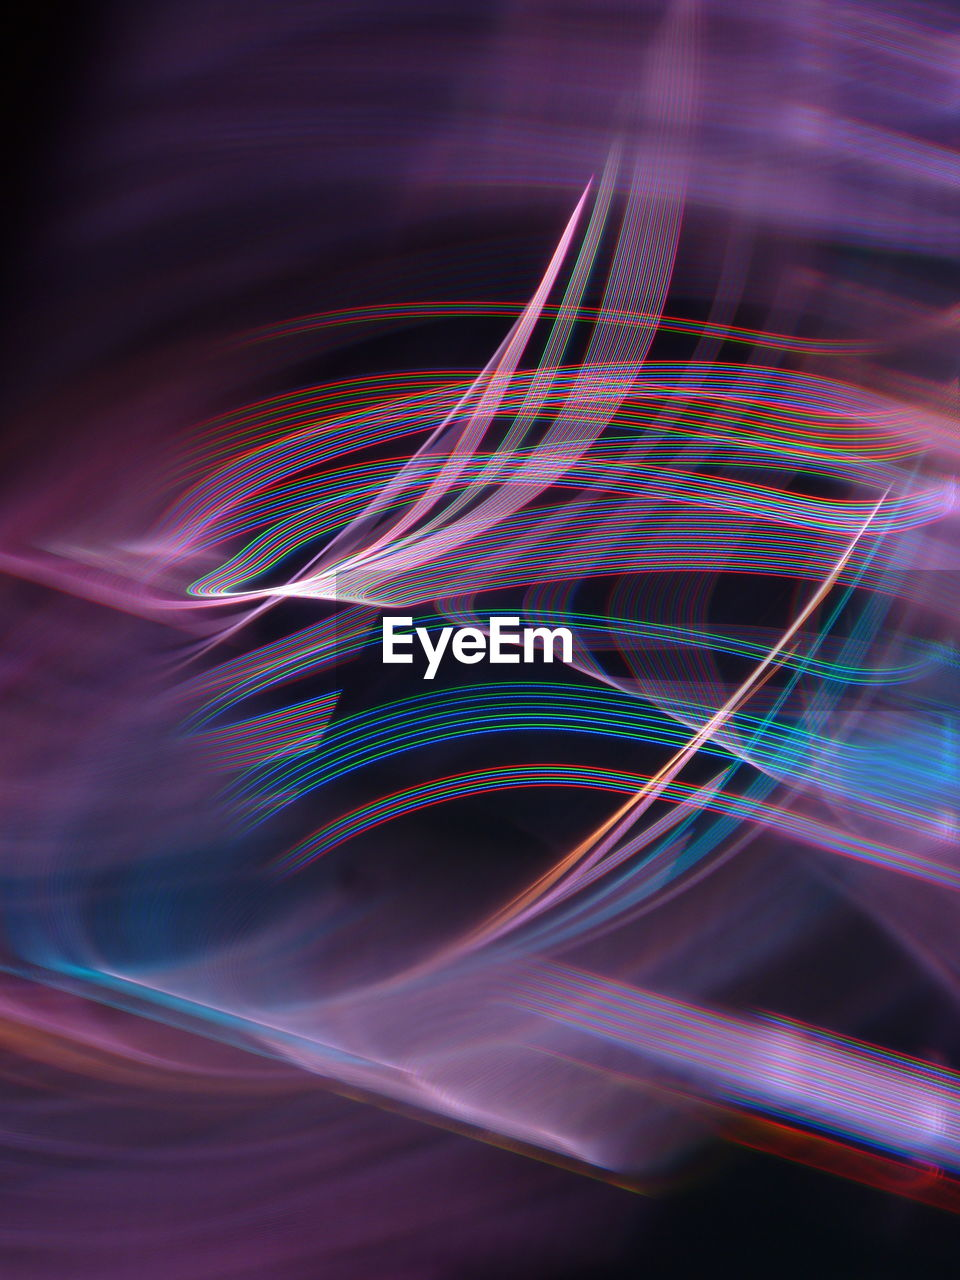 abstract, technology, motion, pattern, light - natural phenomenon, long exposure, connection, light trail, no people, illuminated, studio shot, pink color, fiber optic, speed, blurred motion, complexity, internet, close-up, computer network, data, purple, black background, flowing, big data